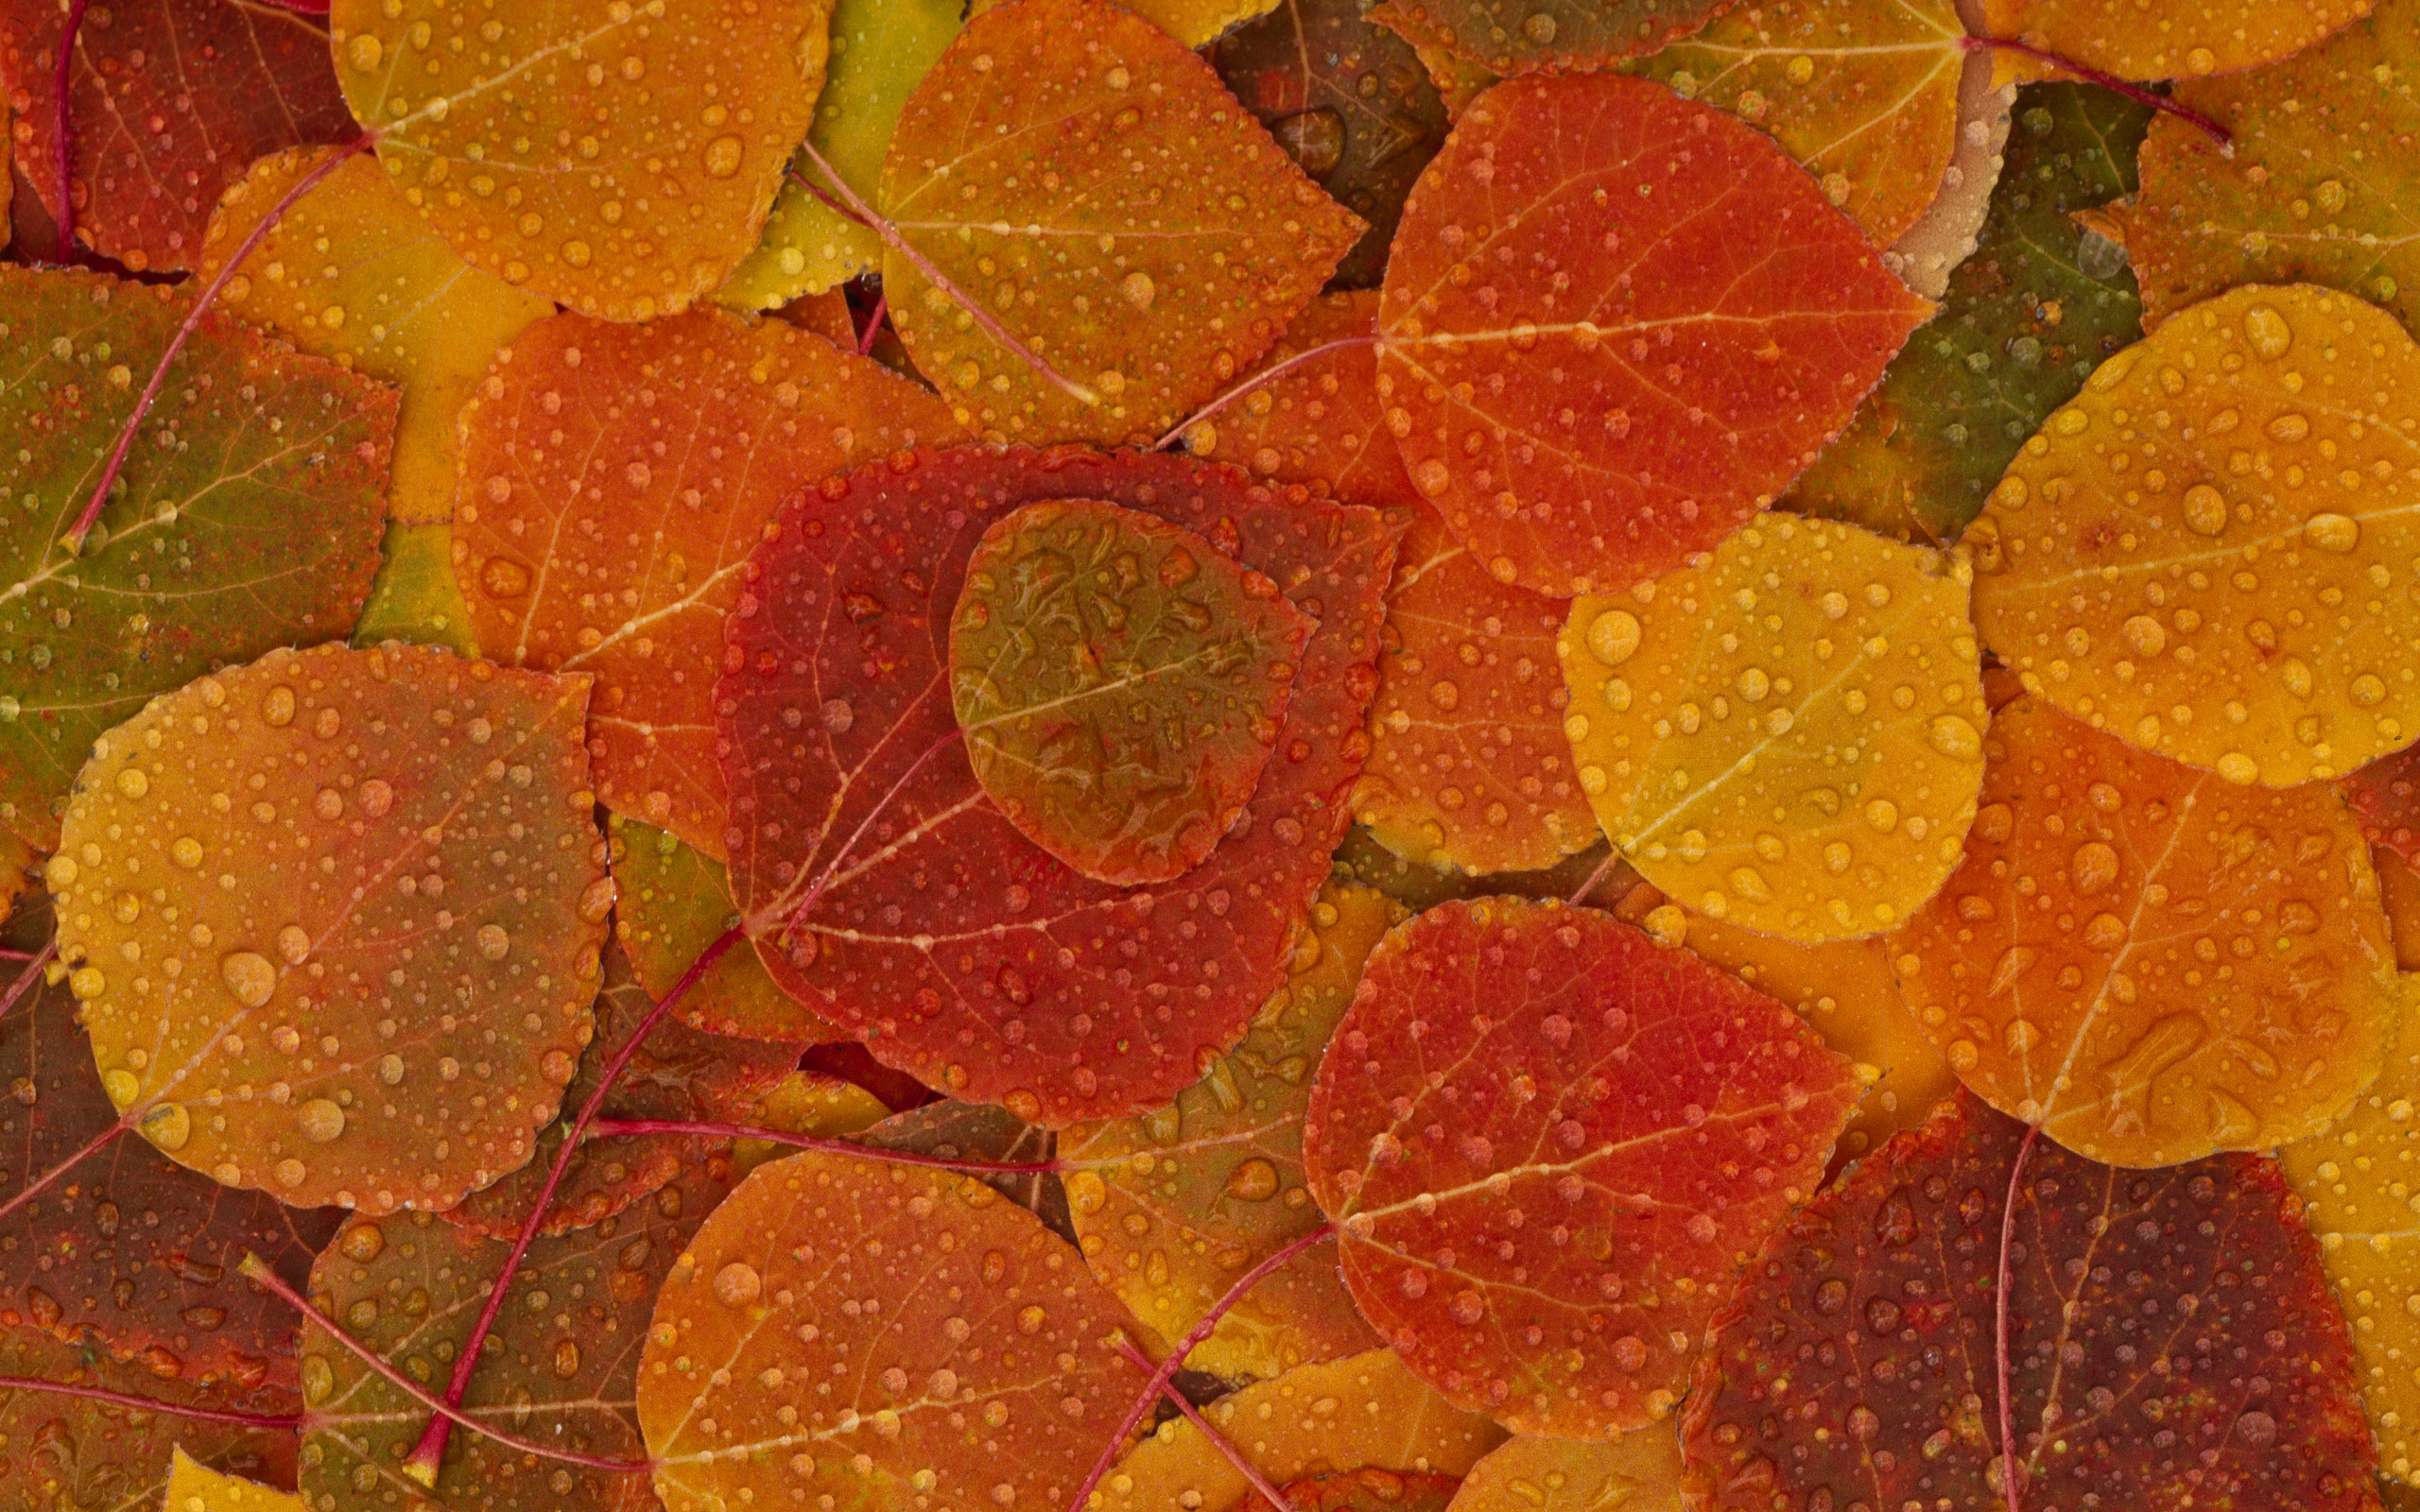 Fall Leaves HD Wallpaper 2560x1600   My Cleaning Lady 2560x1600